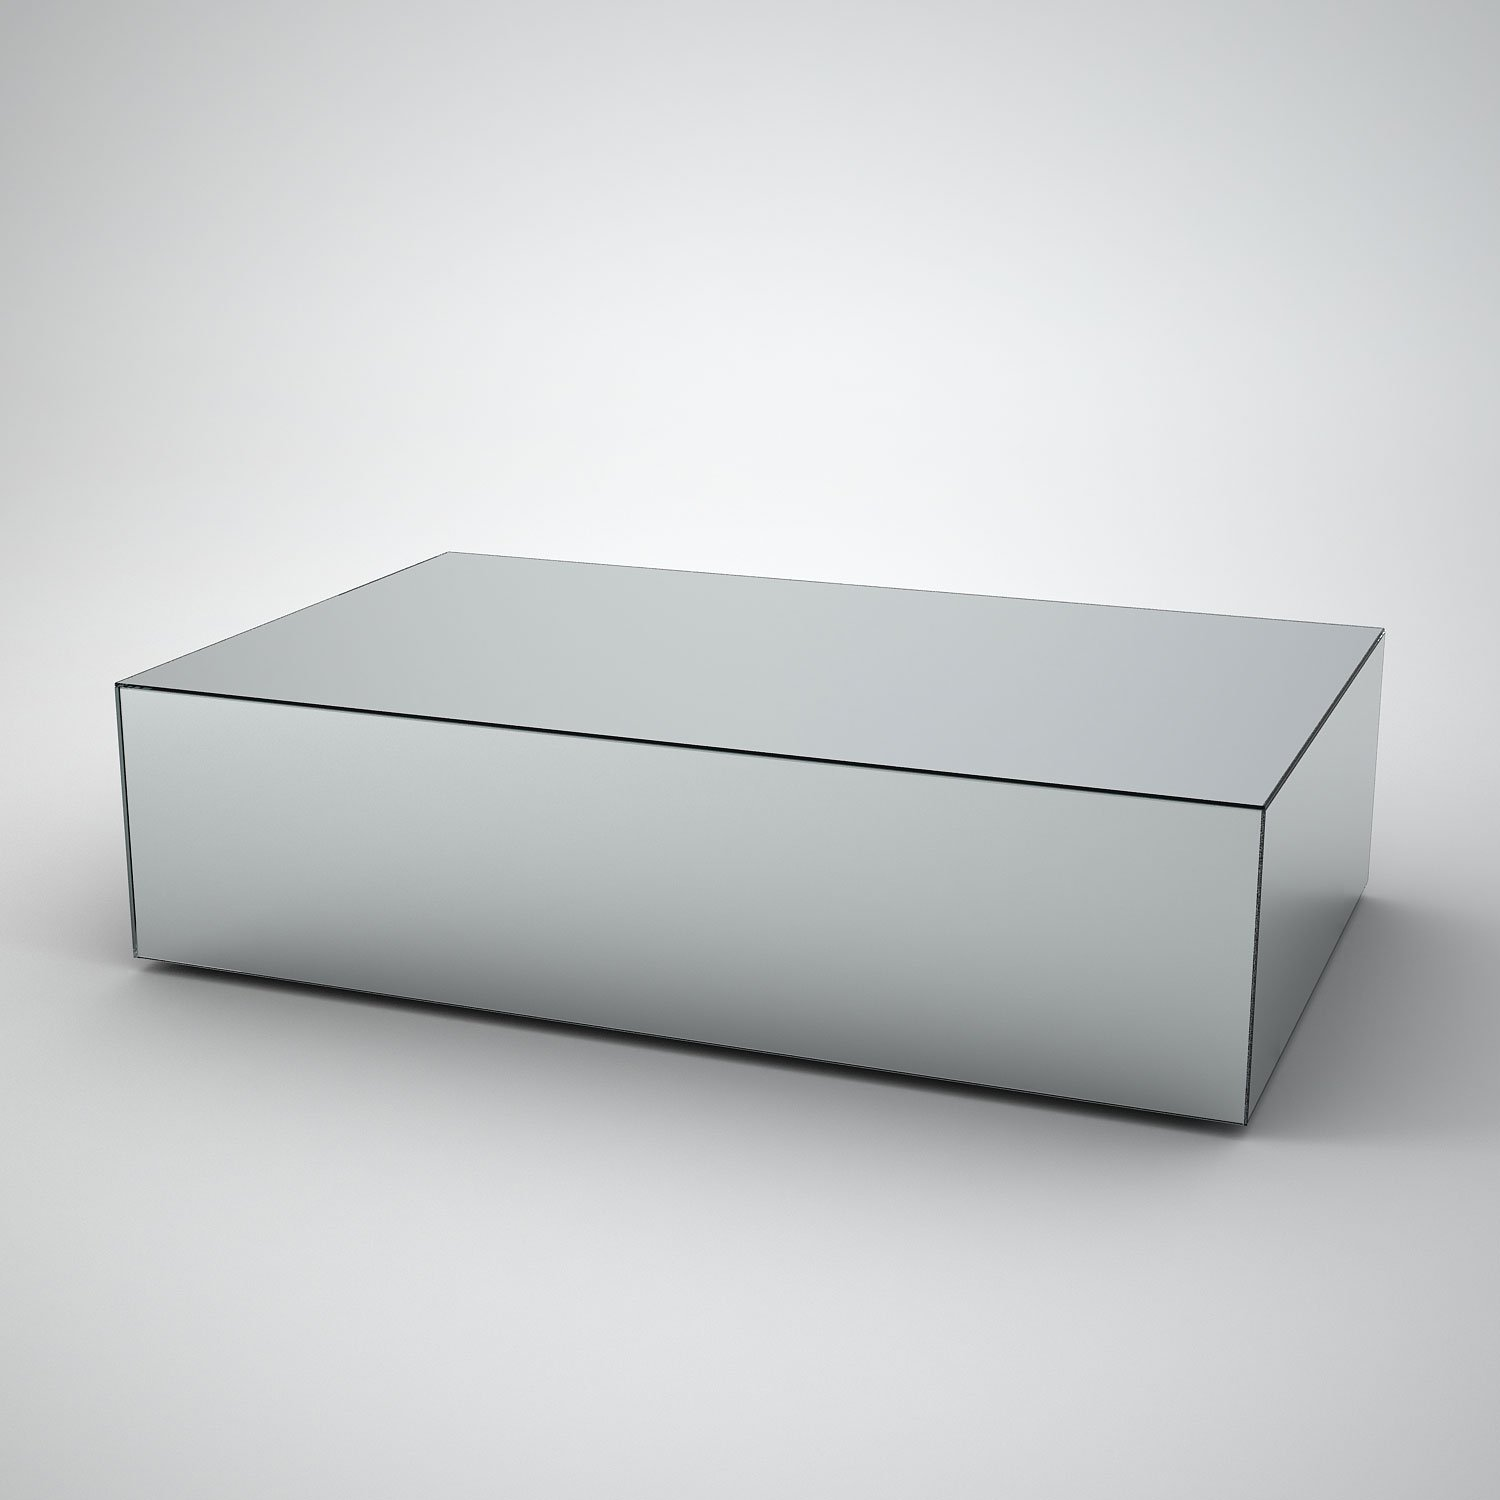 Rectangular Glass Coffee Tables Uk: Rectangular Mirrored Coffee Table By MirrorBox